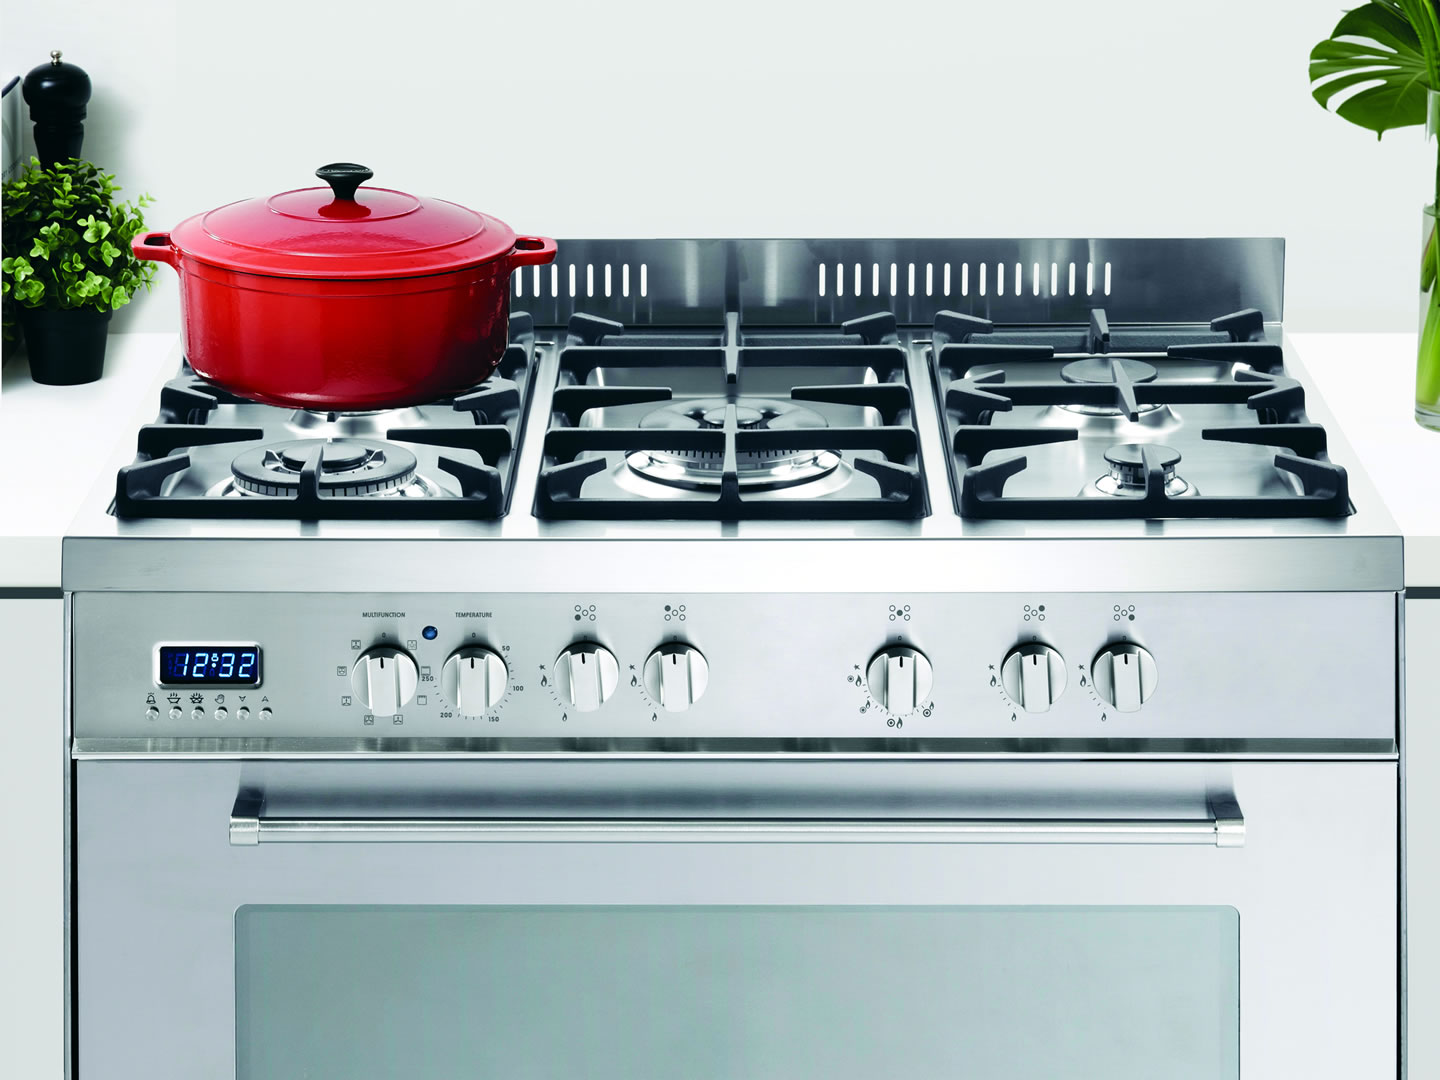 Freestanding 90cm Stainless Steel Dual Fuel Cooker - DEFP907S - Lifestyle Image